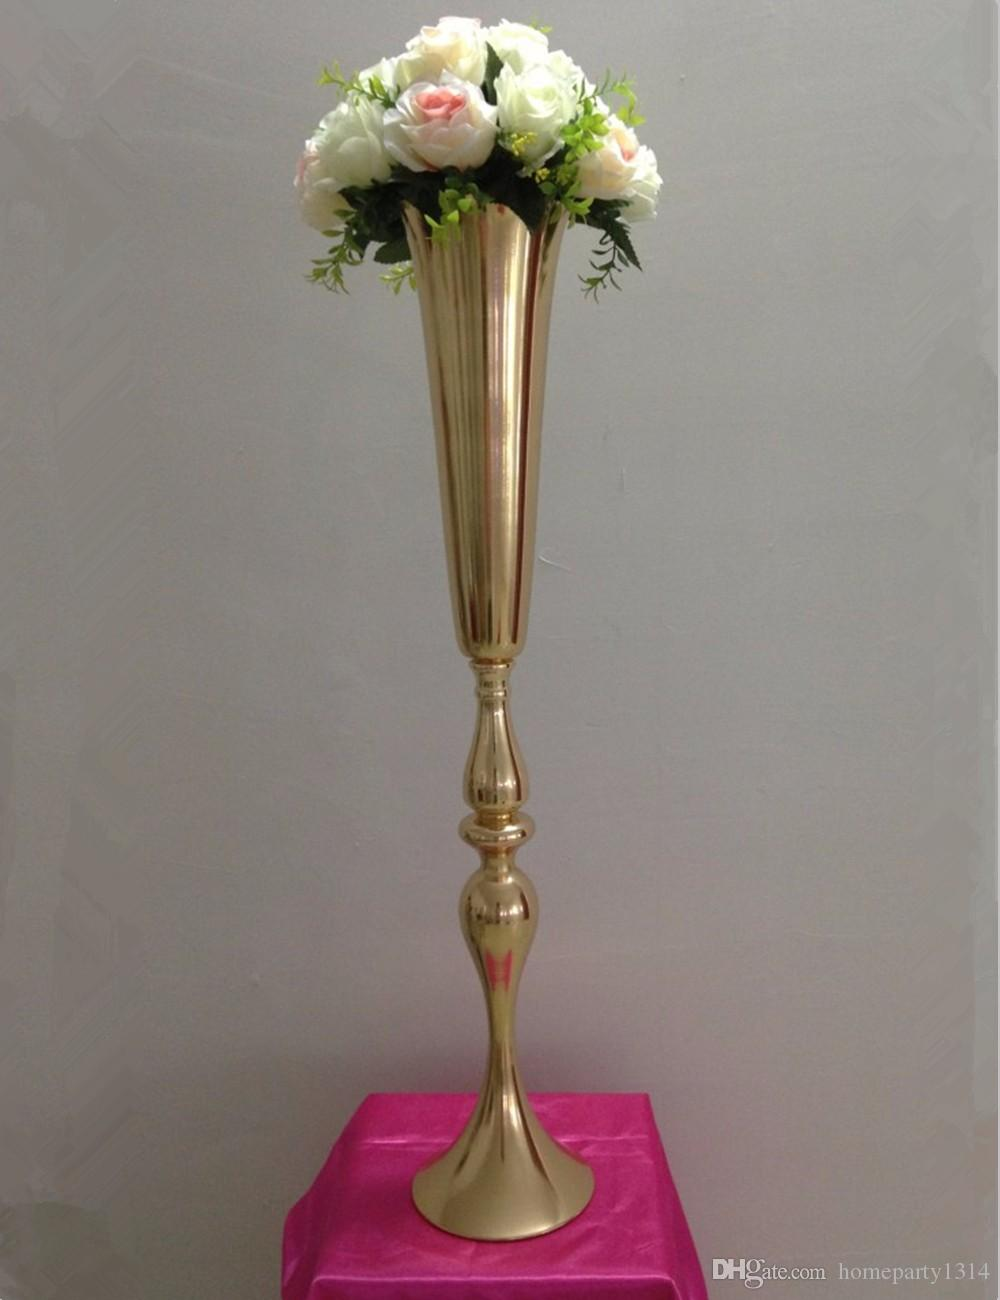 2019 gold wedding table centerpieces big flower vase aisle party stage road lead flowers display wedding hotel home metal rack flower stand